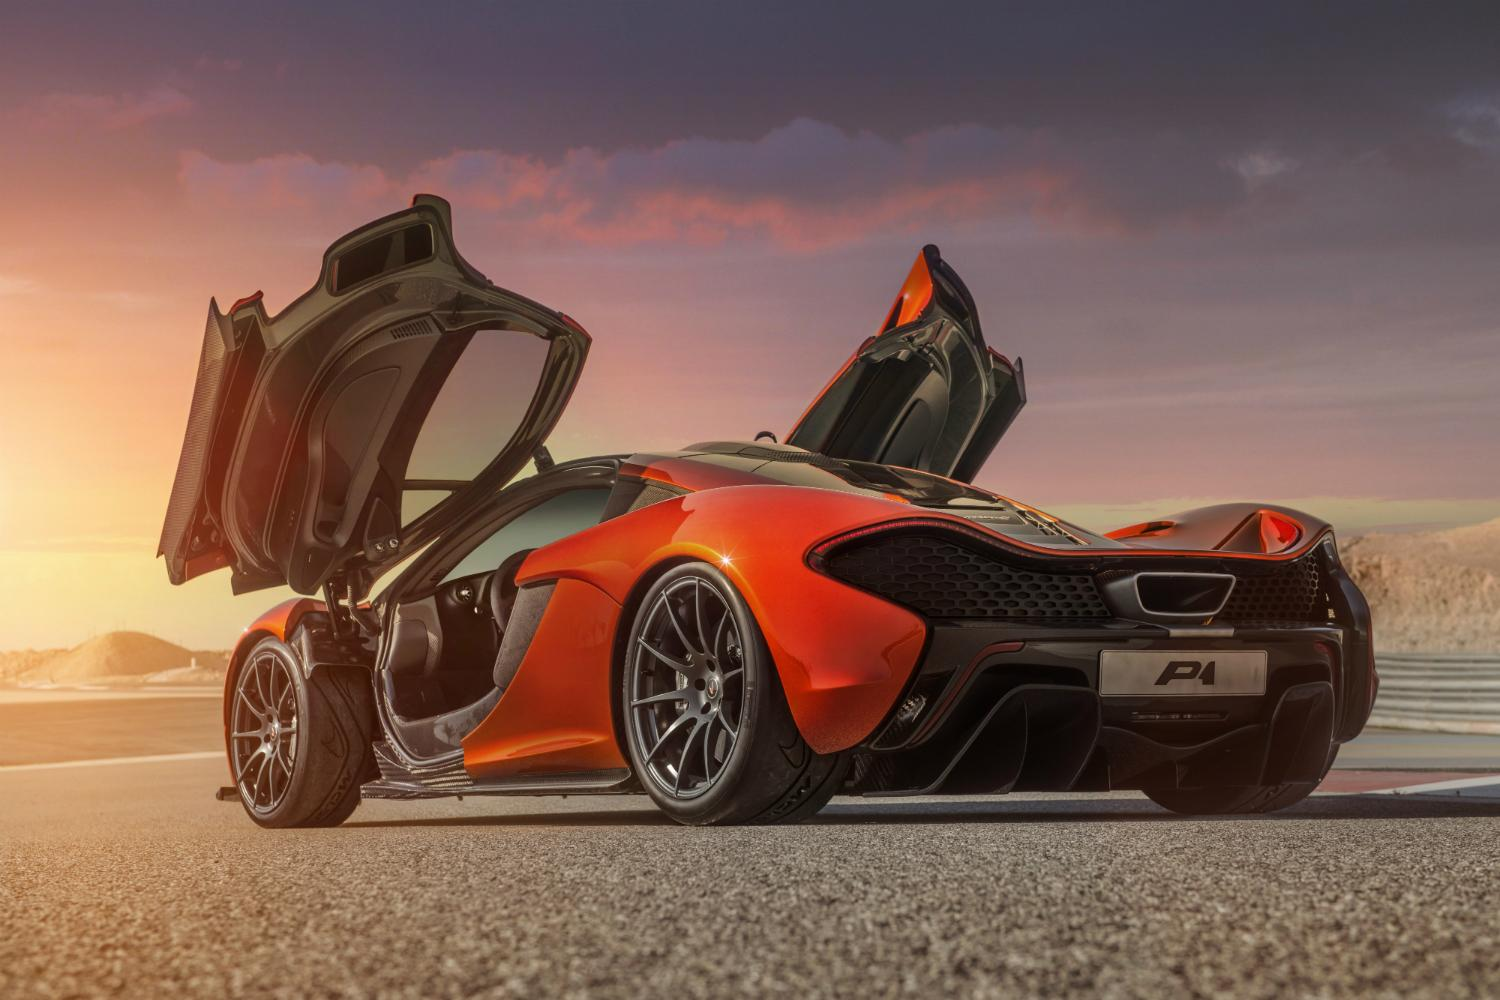 2017 mclaren p15 the next hybrid hypercar from the